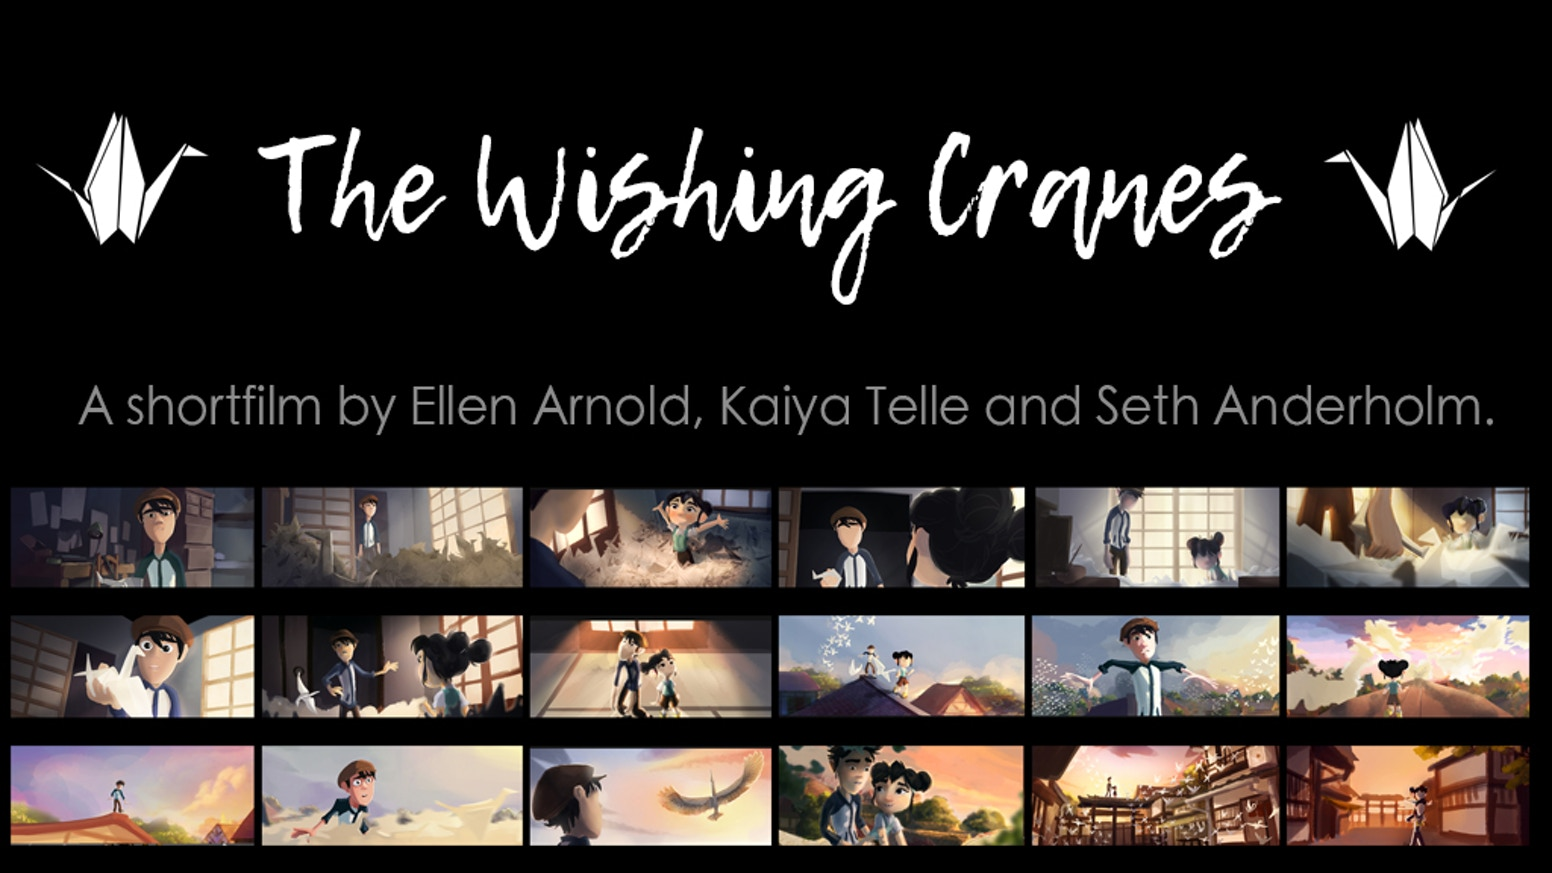 If you fold a thousand paper cranes, you get a wish. Two orphaned siblings rediscover the value of spending time with your loved ones.